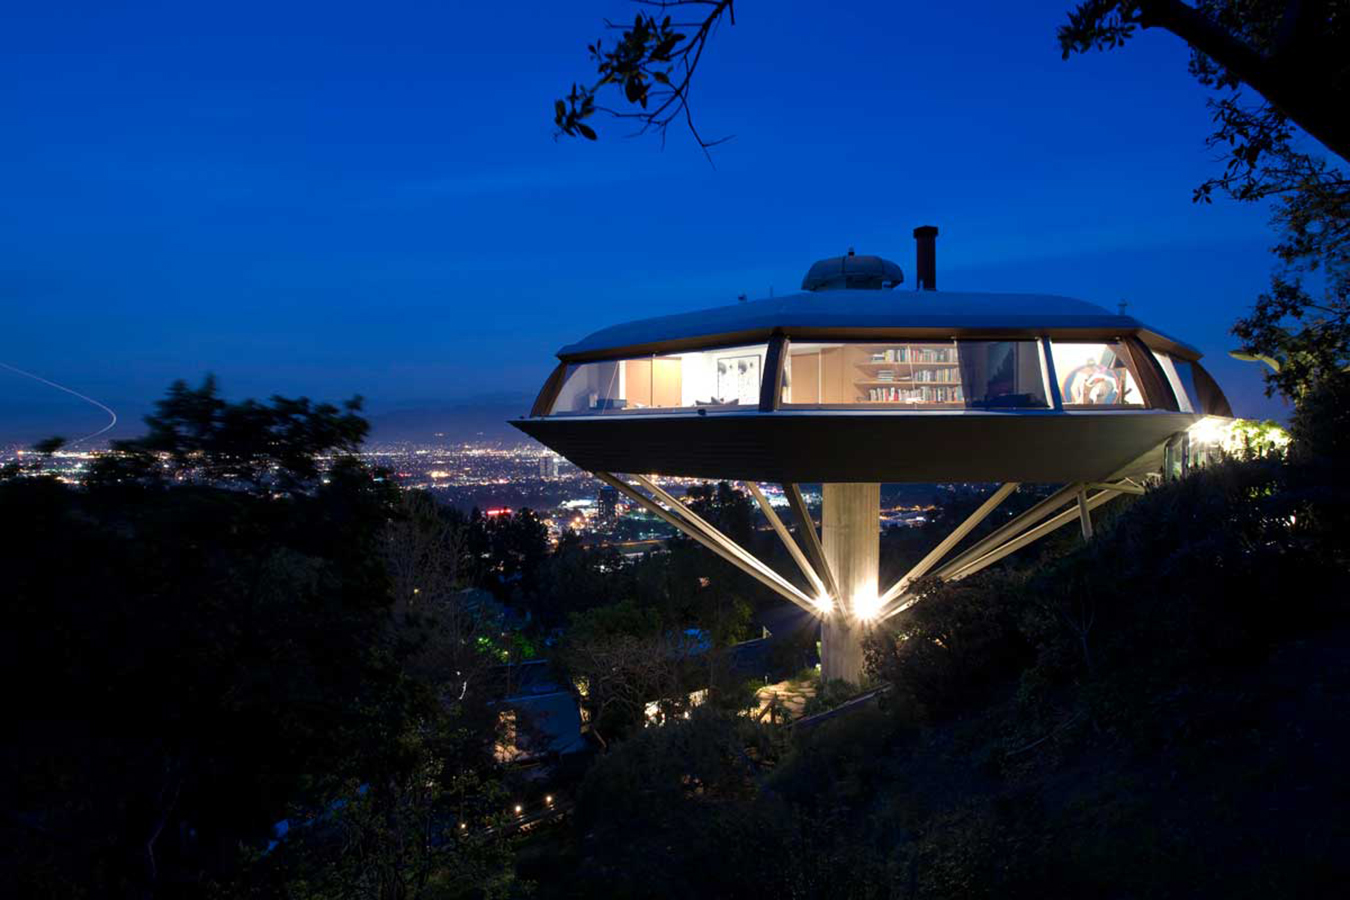 chemosphere house john lautner doble cuerpo photo-joshua-white-8243. [01] Malin Residence, Hollywood, John Lautner (1960)